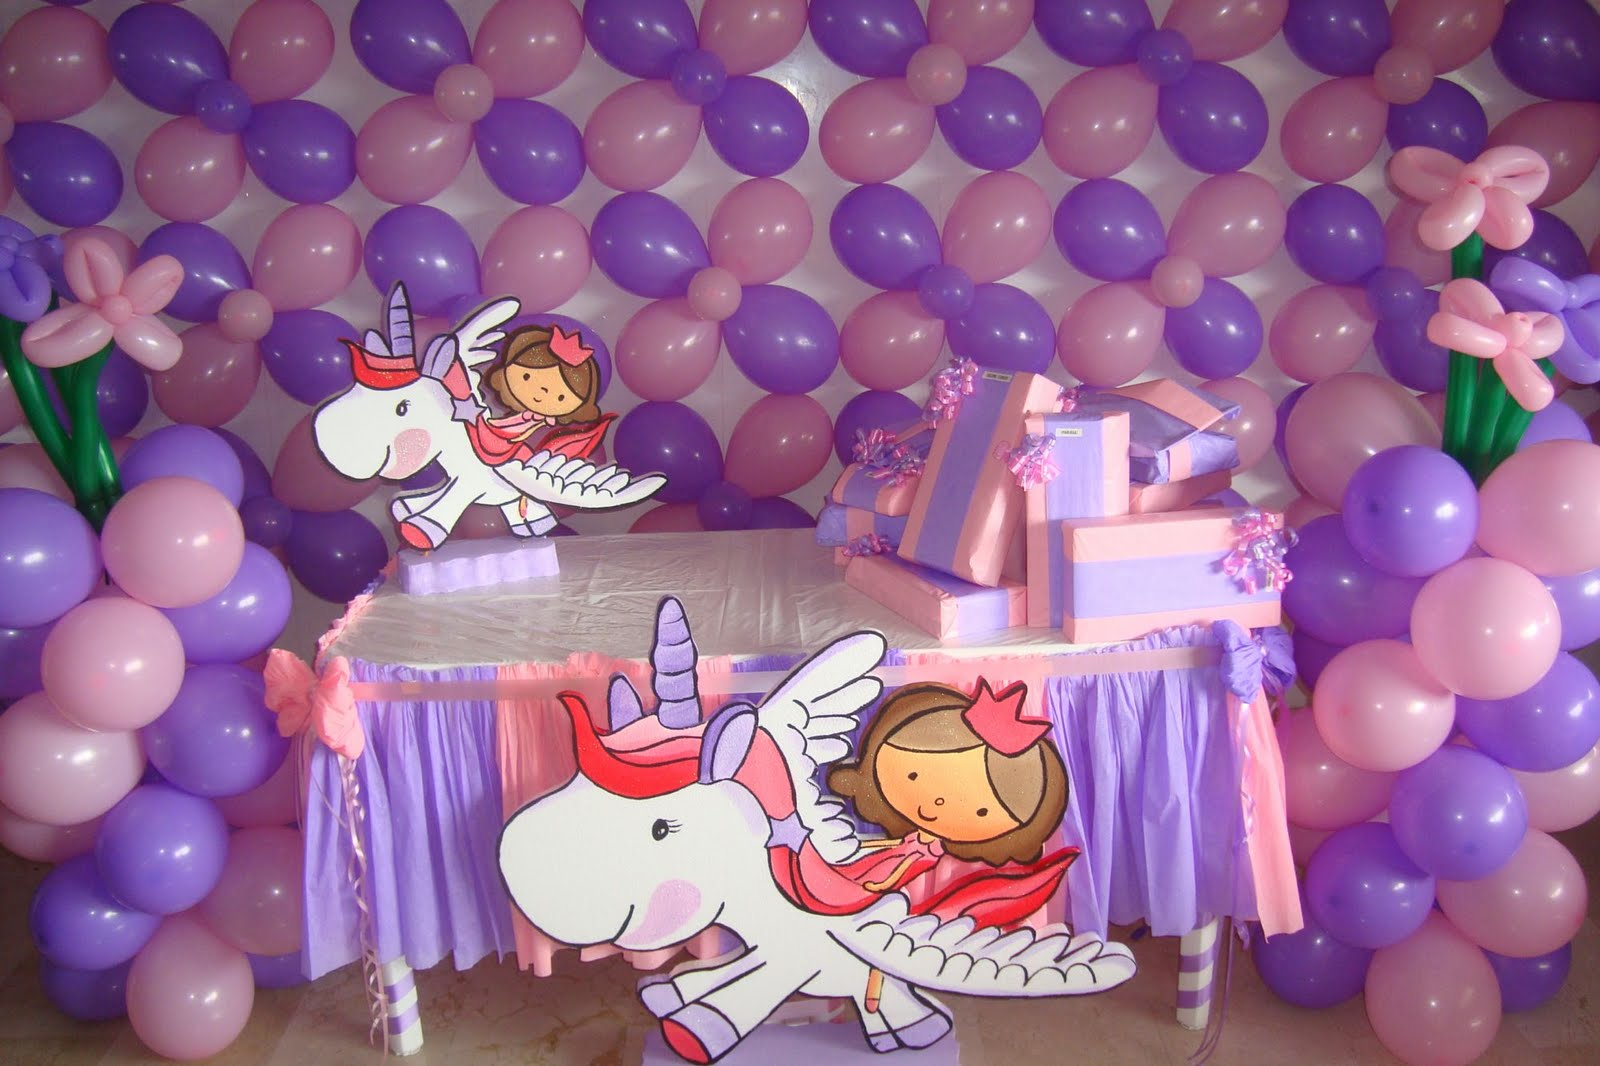 Bonitas fotos de decorados con globos for Imagenes decoracion fiestas infantiles